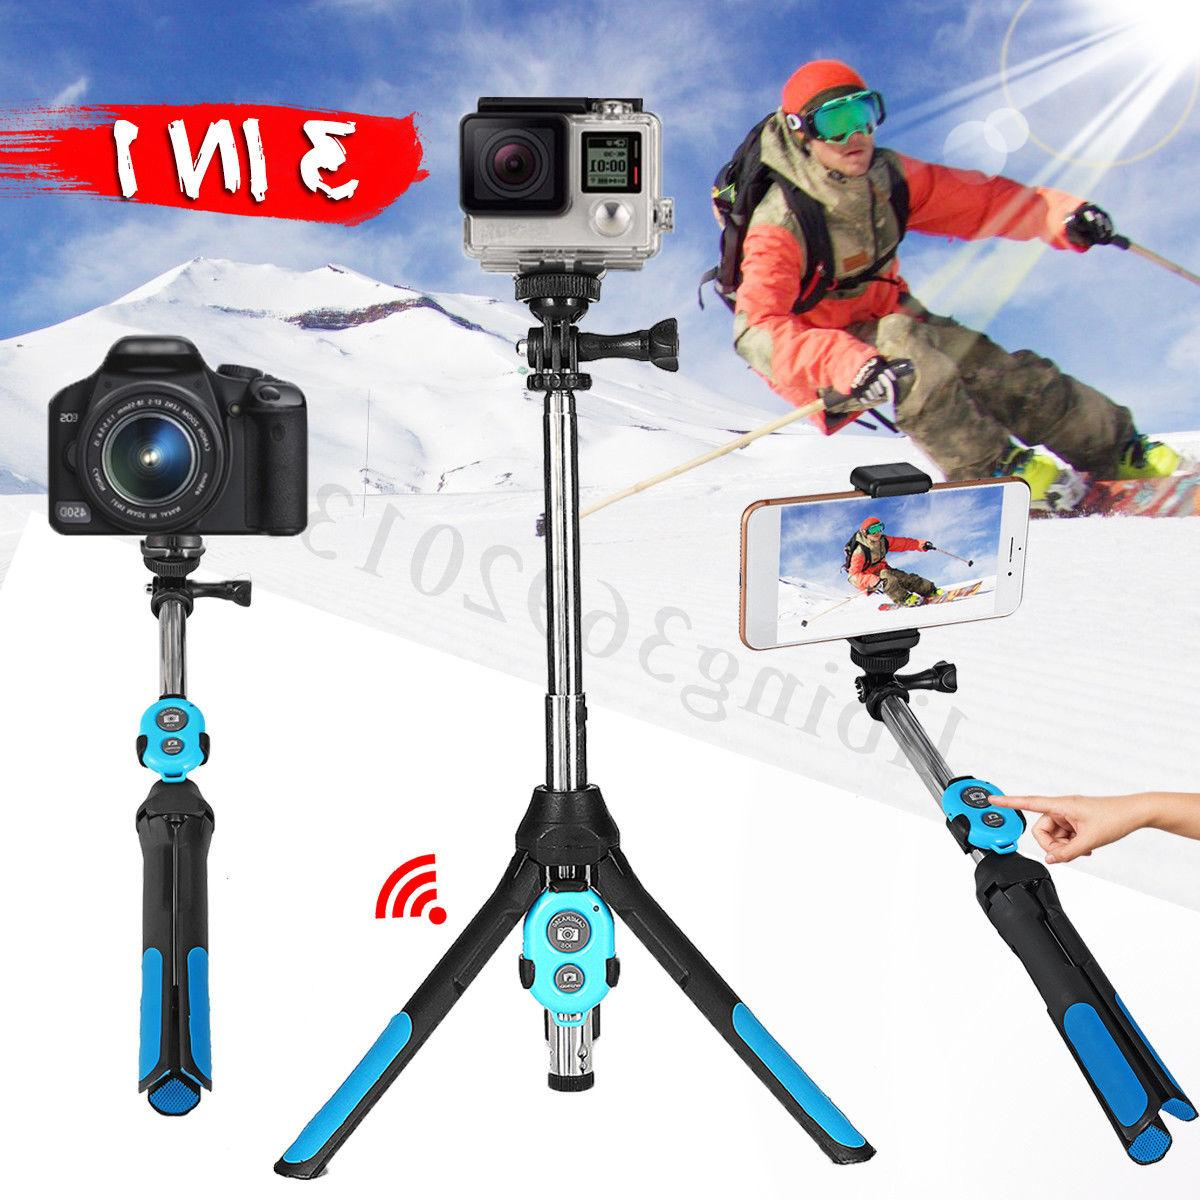 3 in1 telescopic arm selfie stick tripod